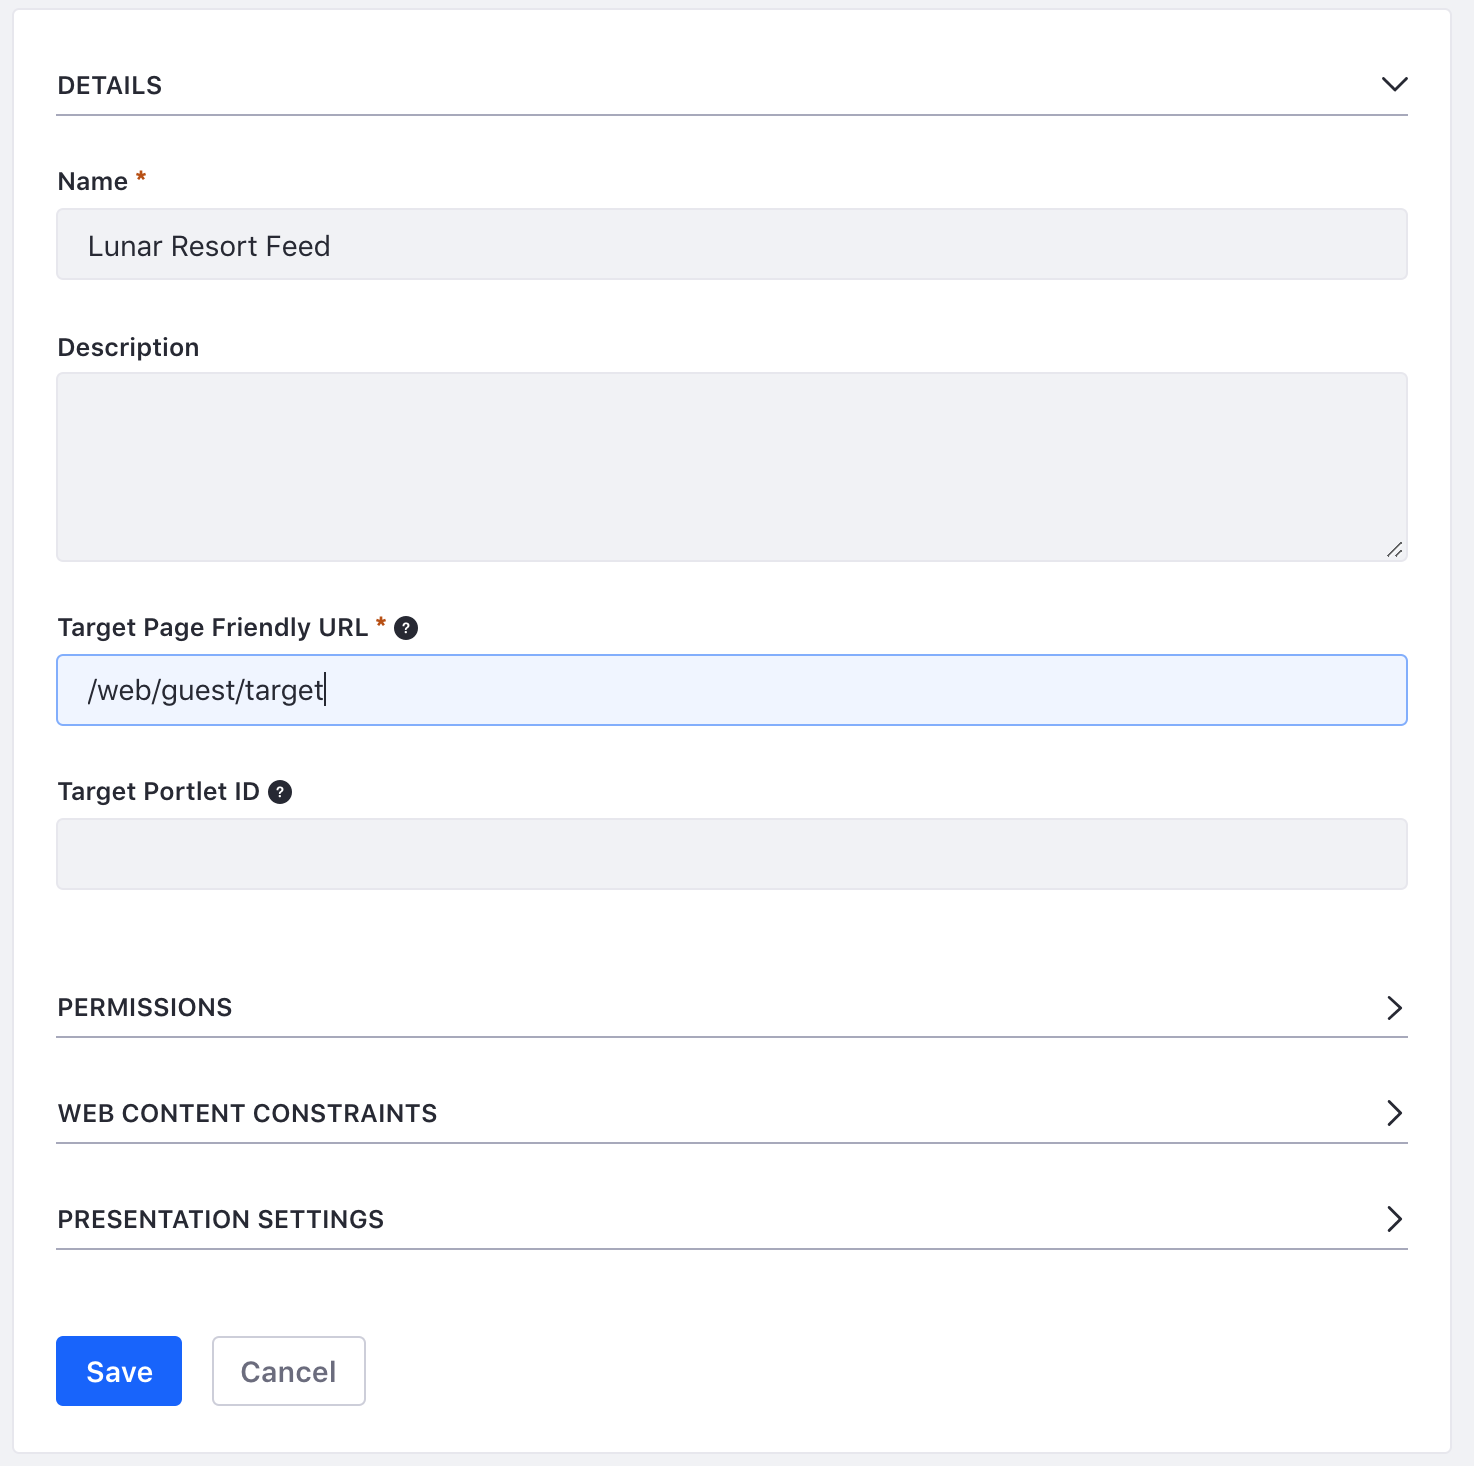 Figure 1: To create a new RSS feed, you only need to specify a name, target page, and web content structure. Of course, you can also configure other features of the feed such as its permissions, web content constraints, and presentation settings.